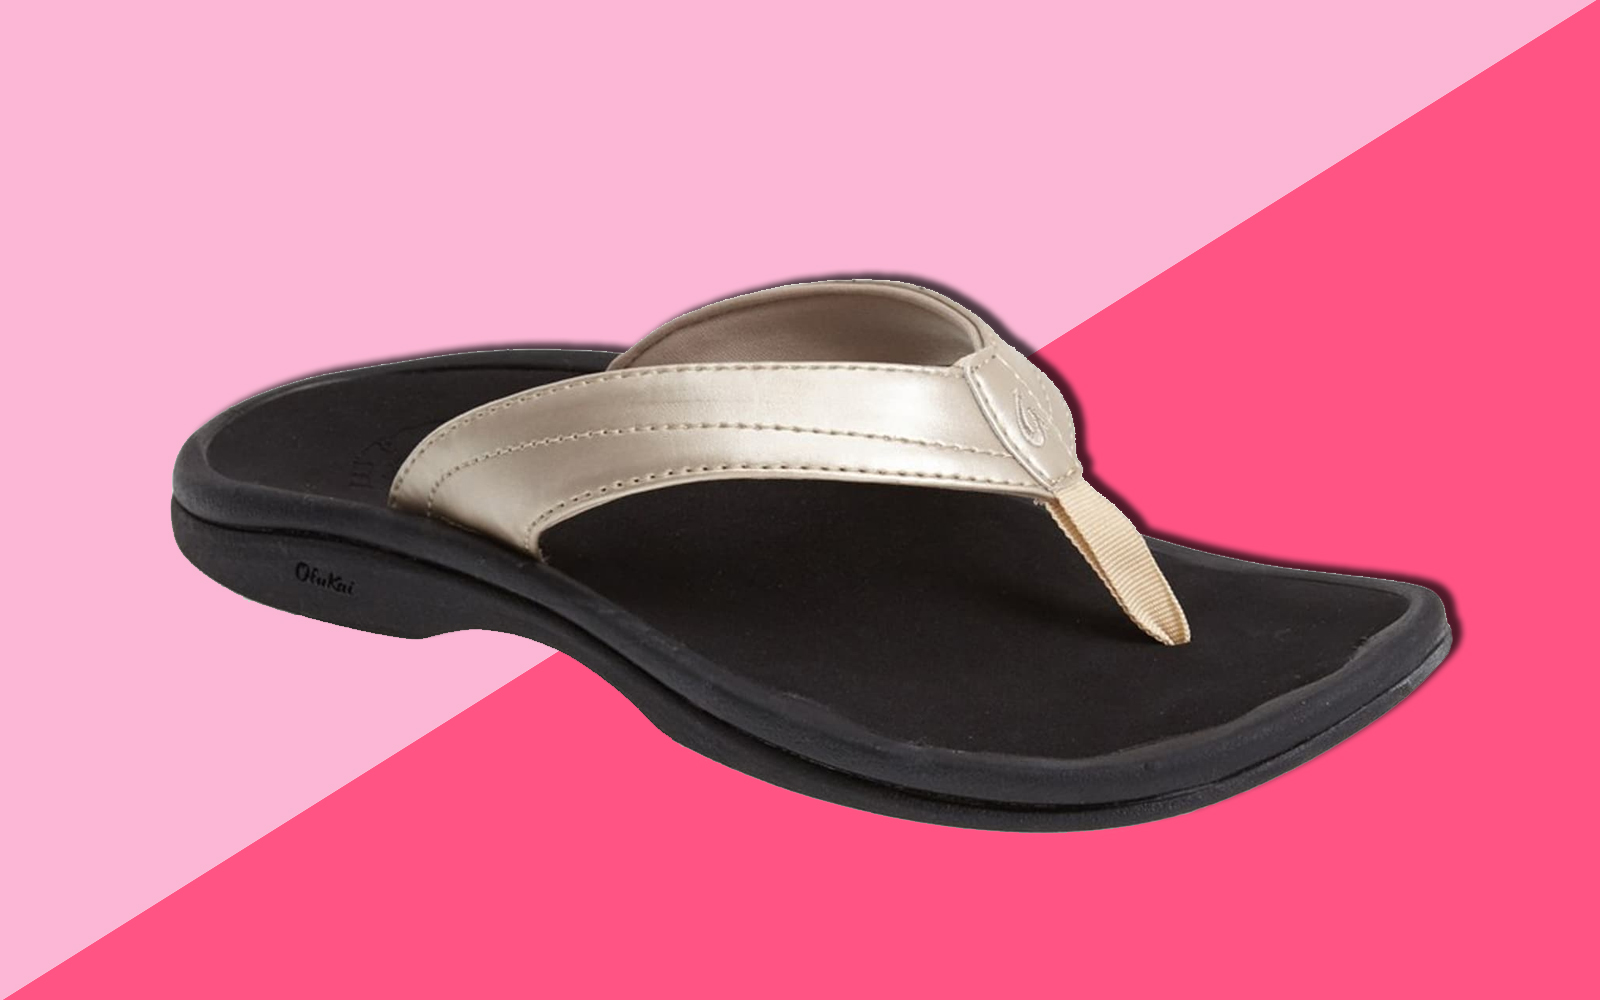 Nordstrom Shoppers Can't Get Enough of These Impossibly Comfortable Flip-flops